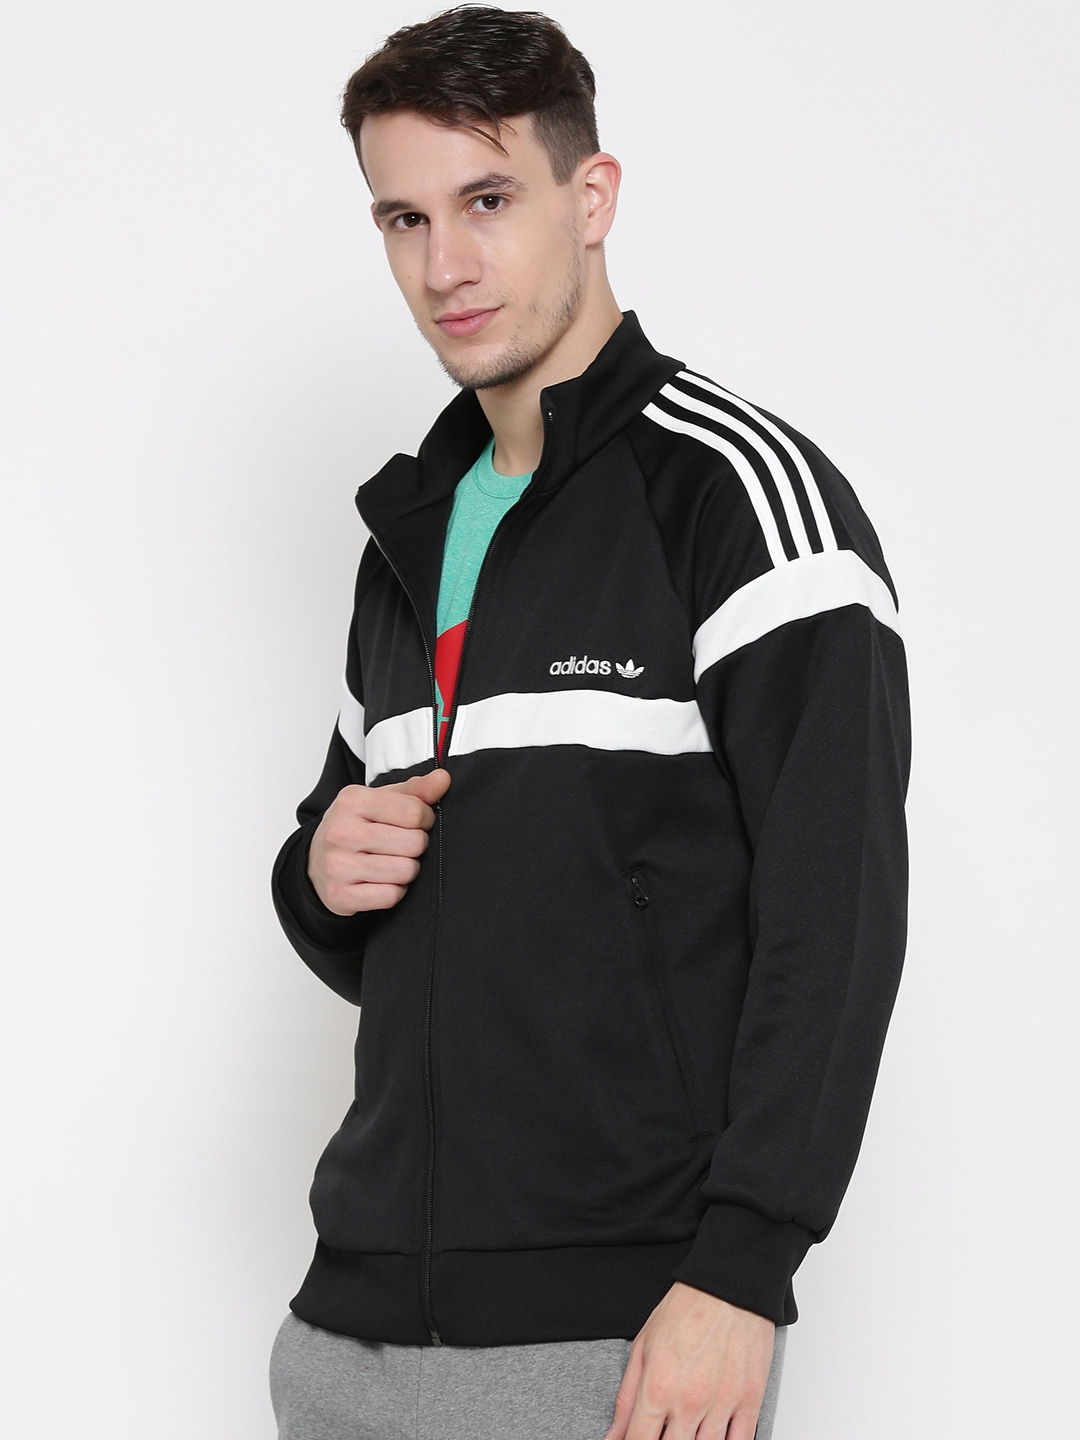 Buy Adidas Originals Black Itasca Tt Sporty Jacket Jackets For Men